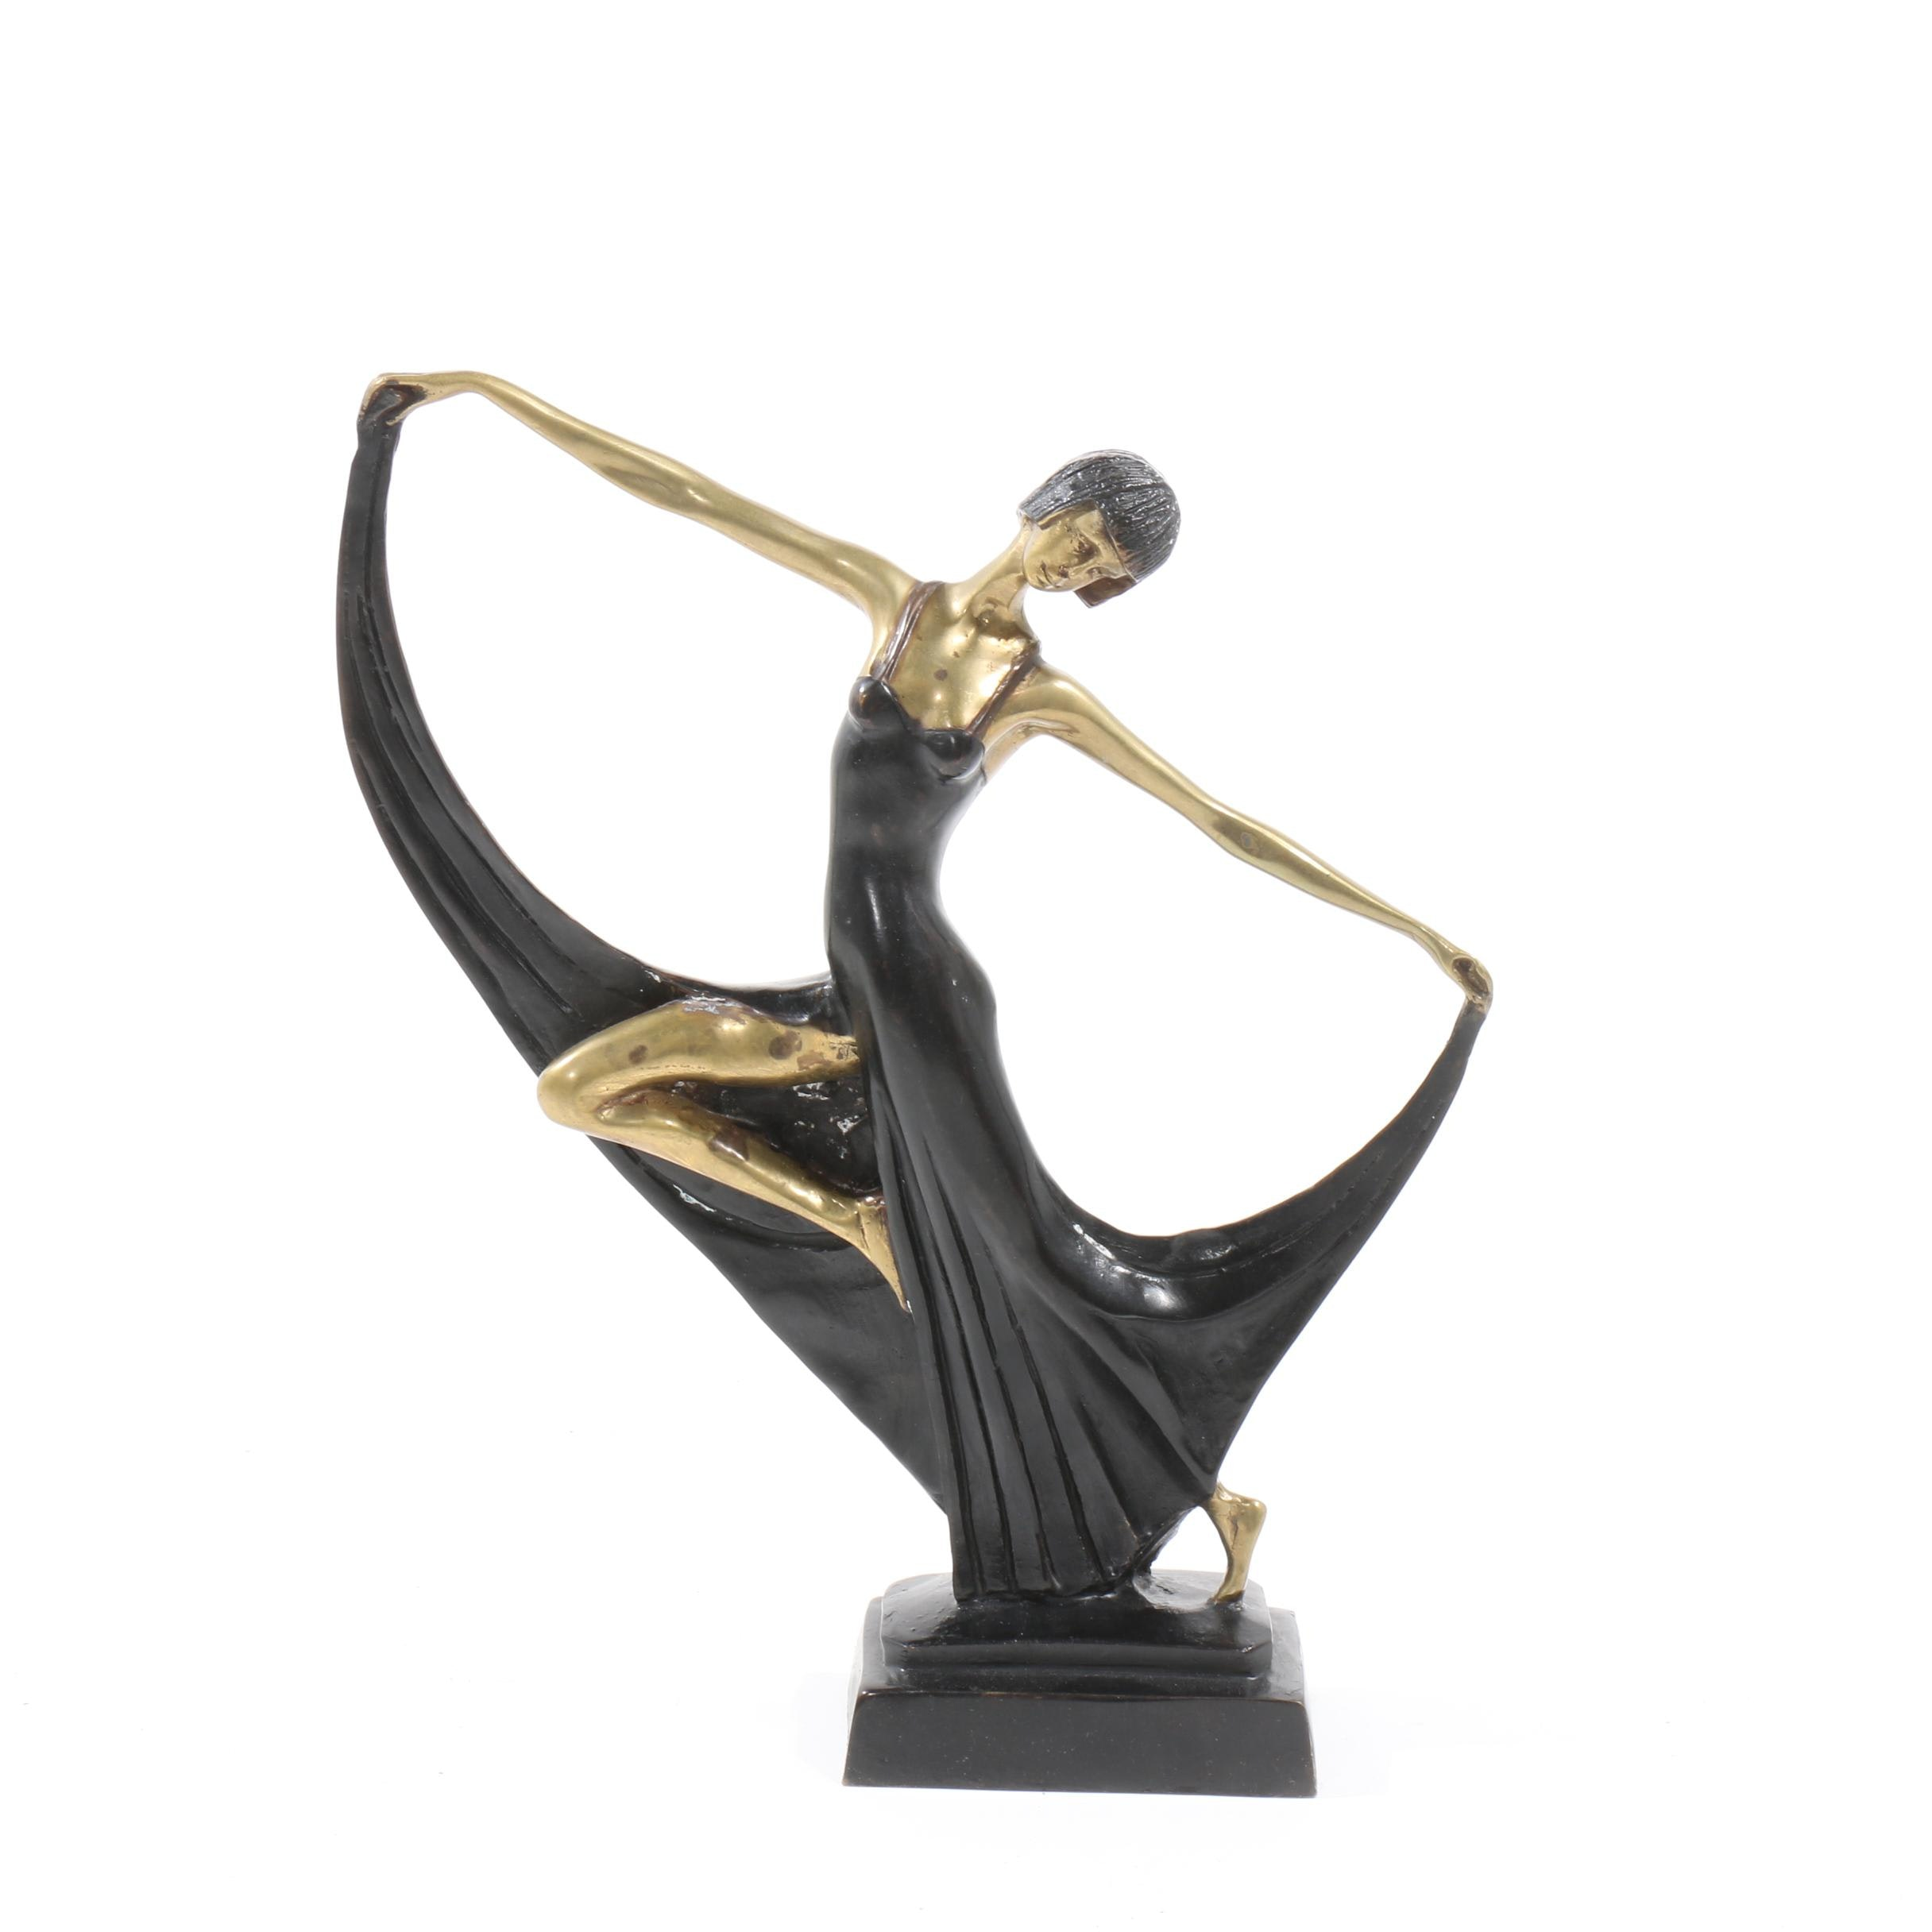 Brass Sculpture of Art Deco Style Figure